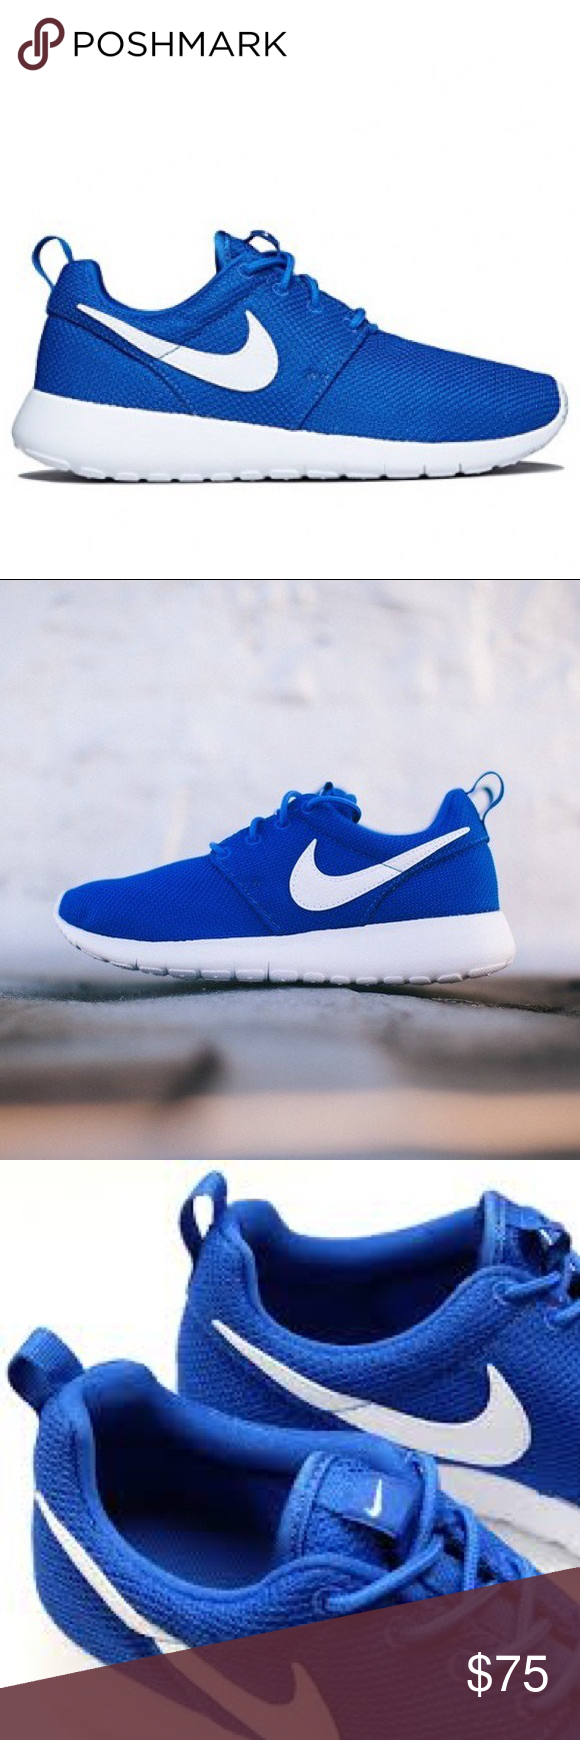 3e7972c101ad8 NWT 💙 NIKE ROSHE ONE WOMENS SHOES BLUE WHITE Brand new without box. Shoes  are